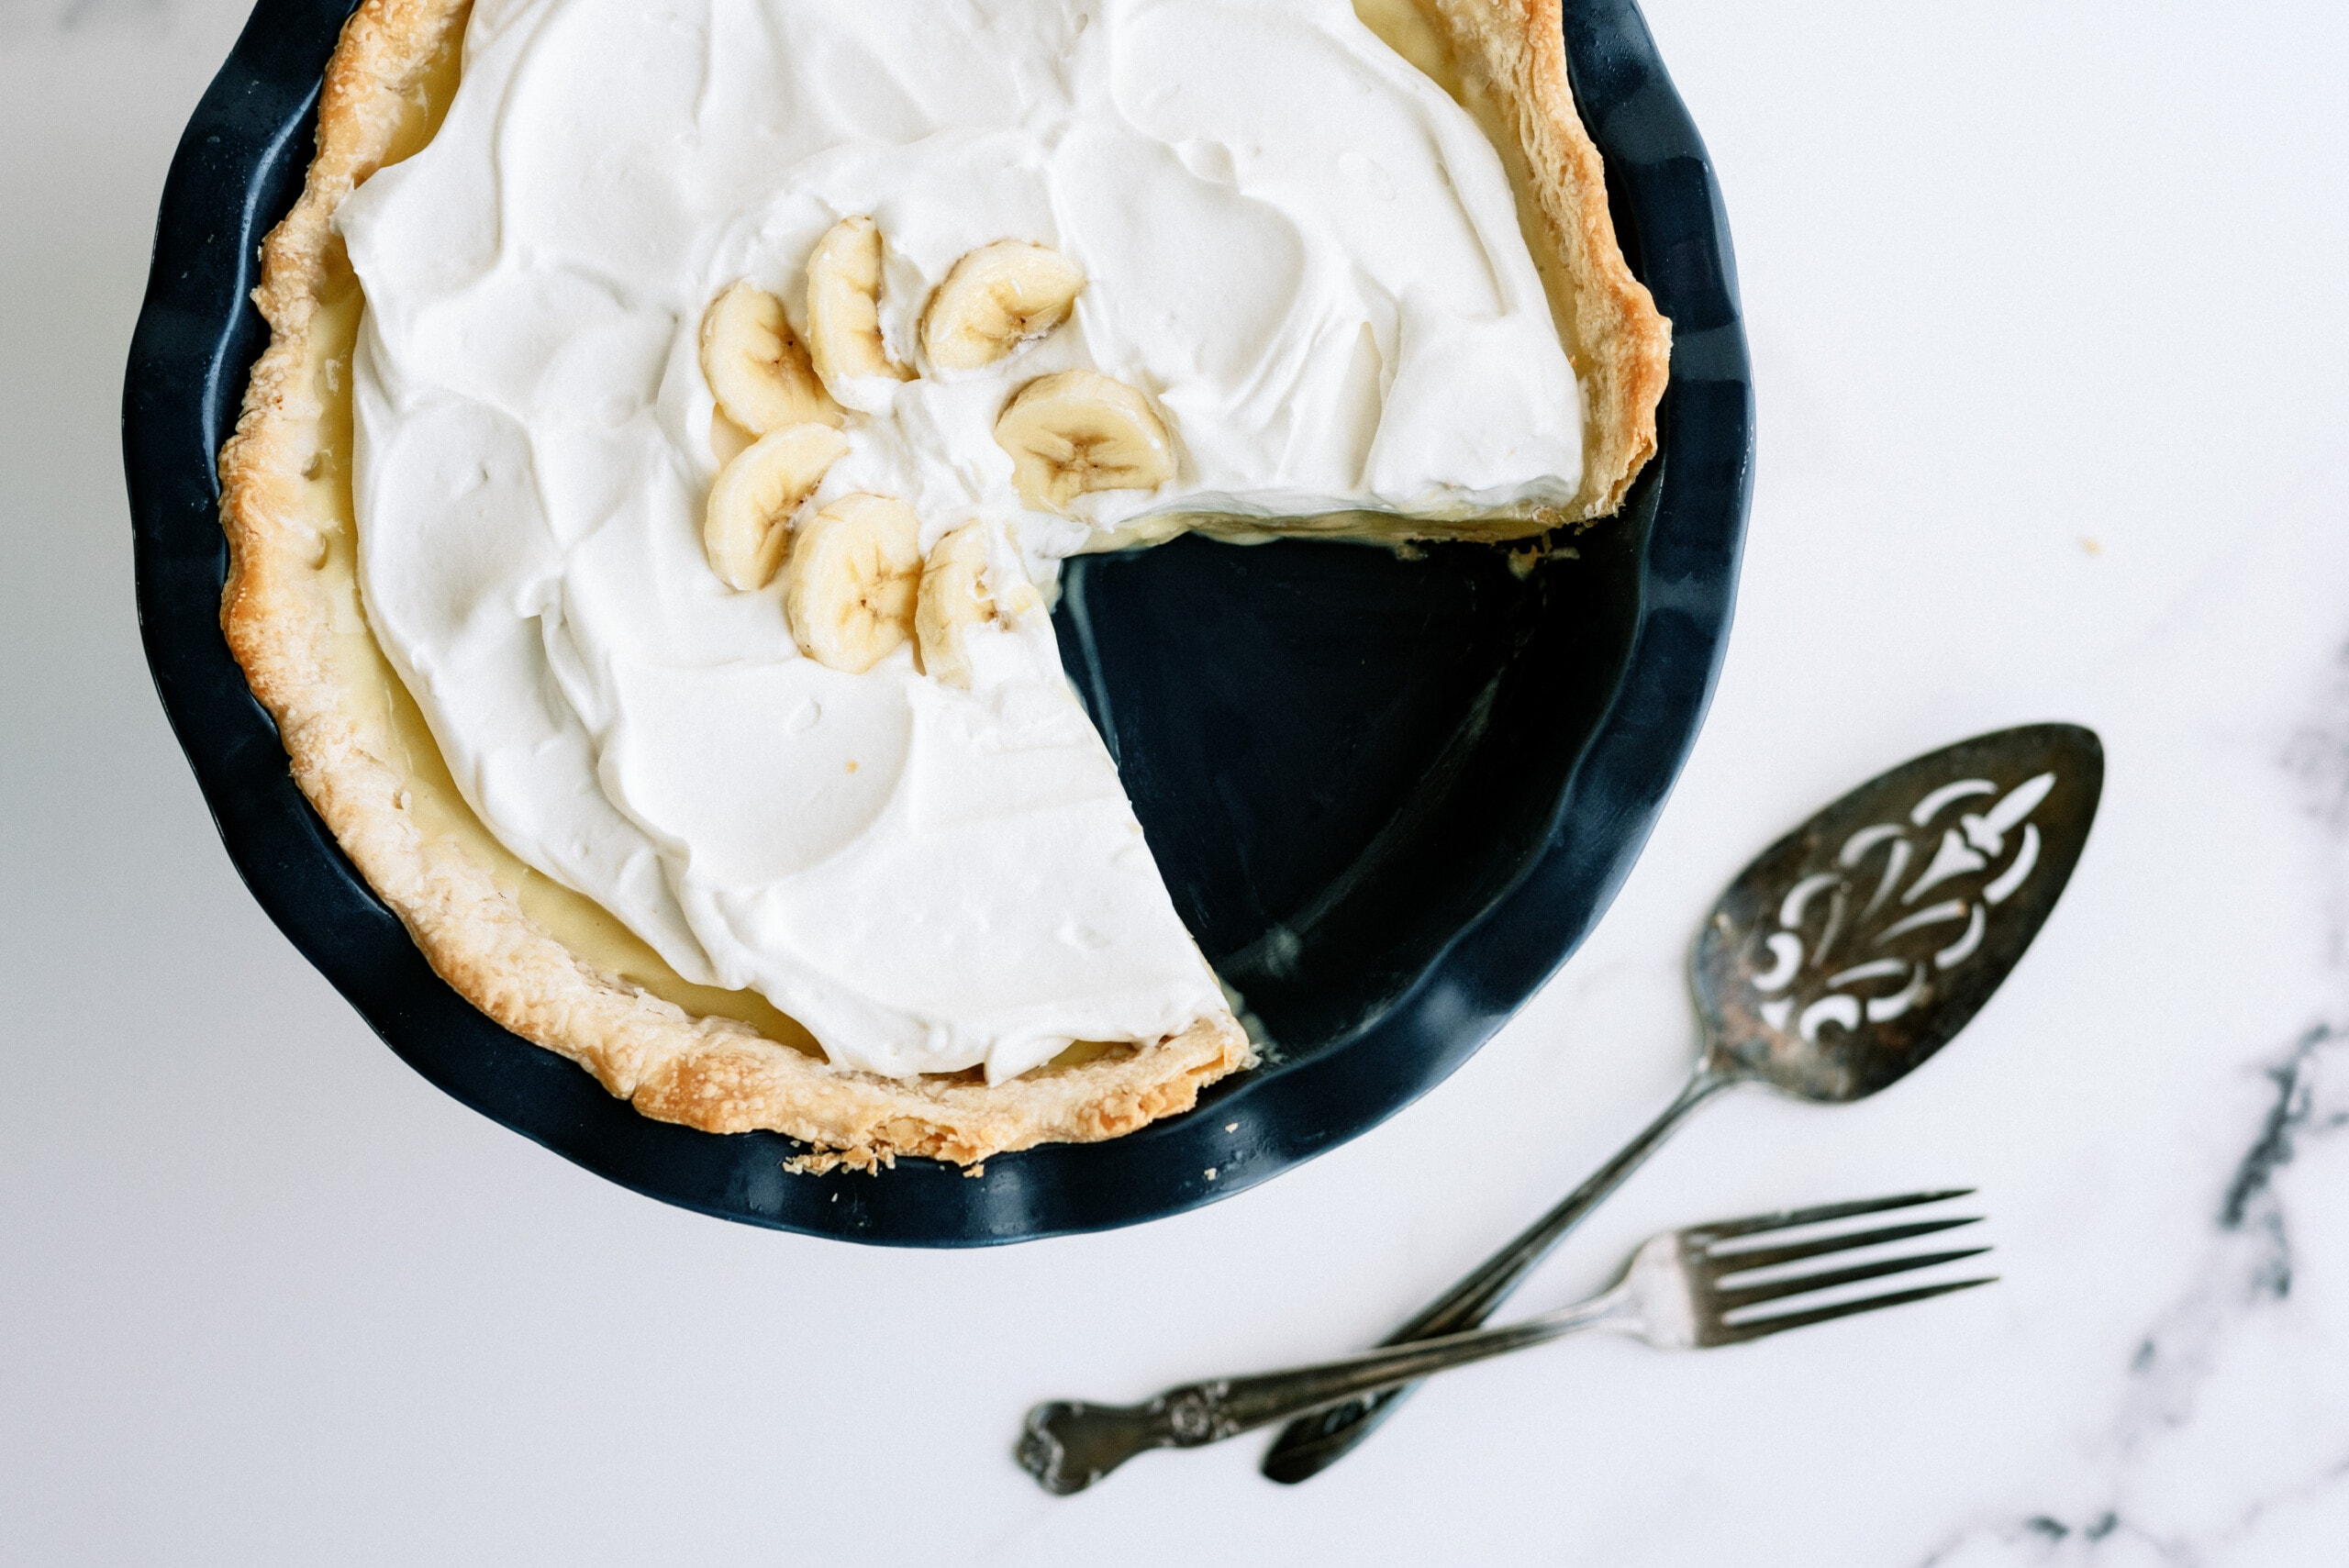 banana cream pie with a slice taken out of it